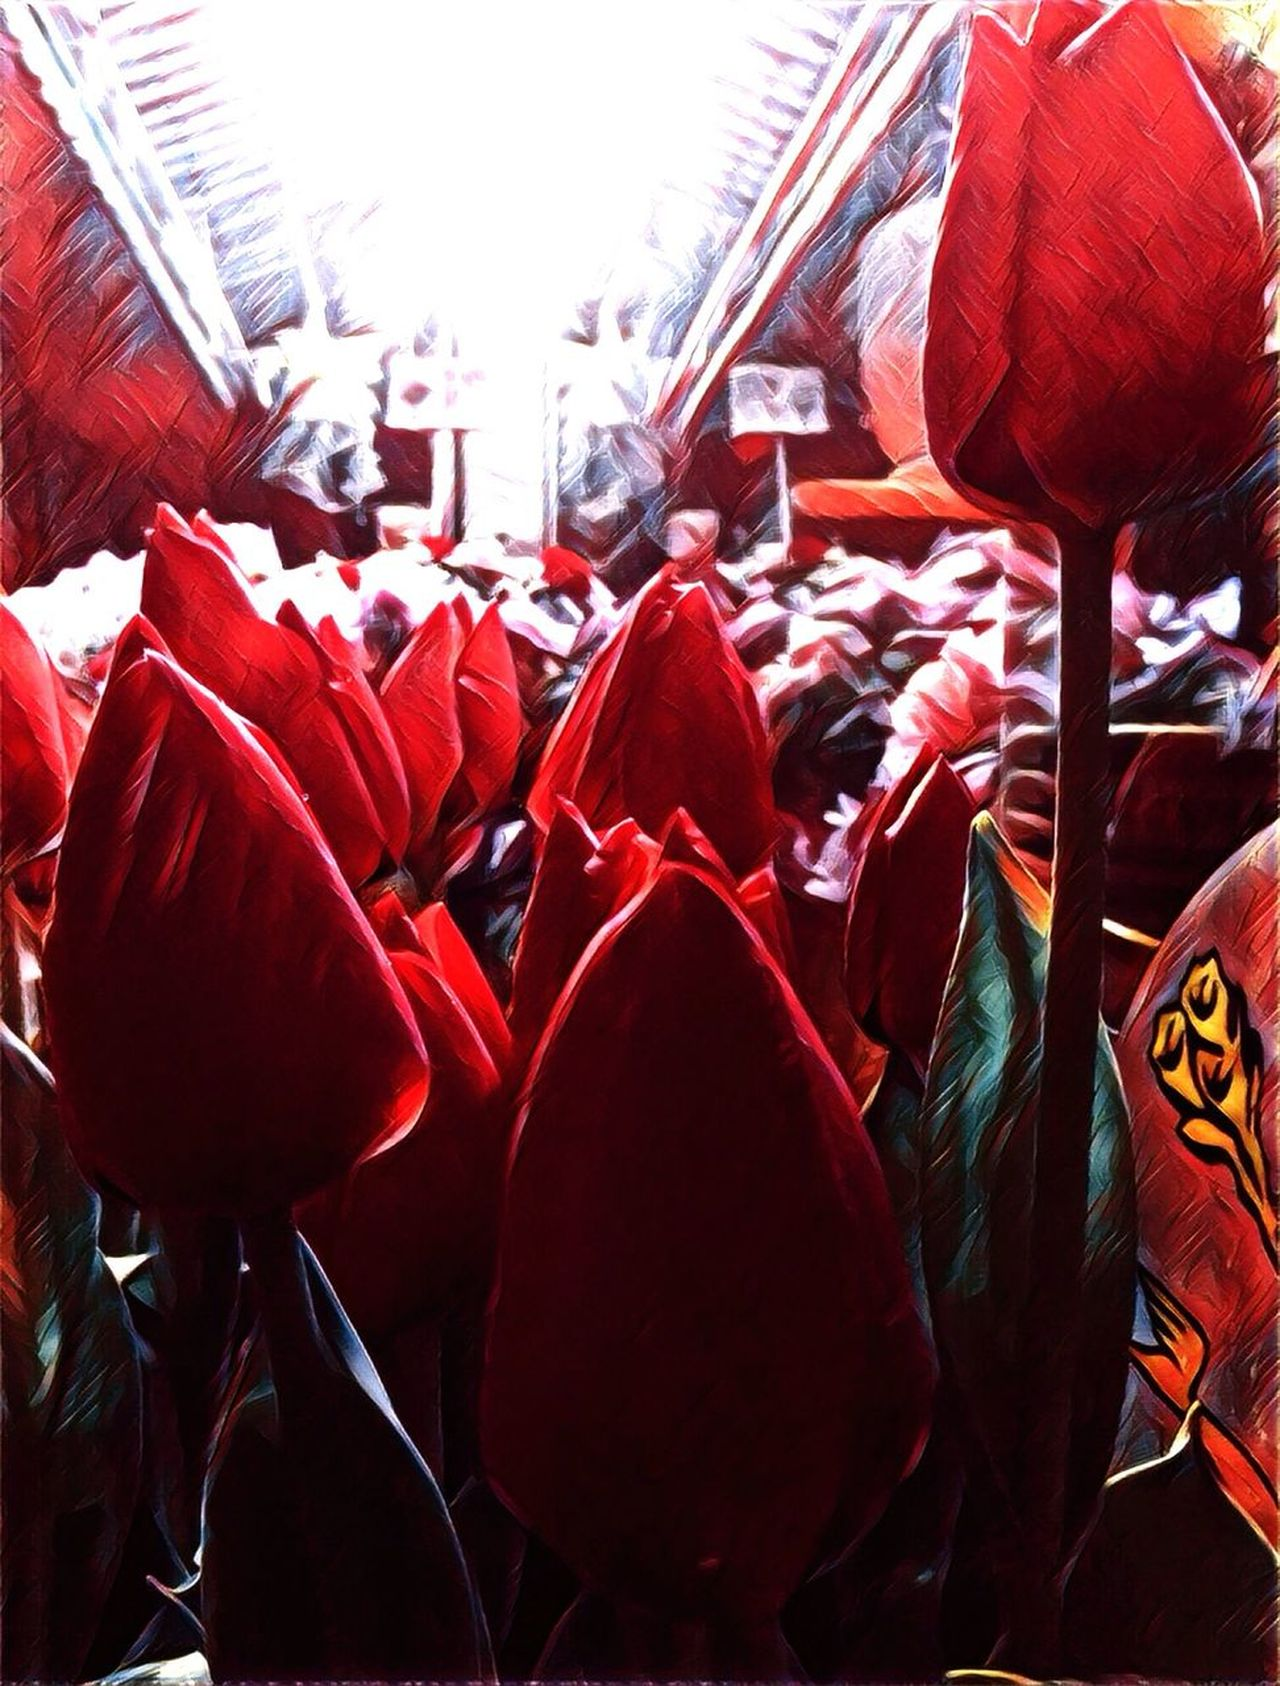 Lining up for the concert Crowd New York City Flowers Tulips Flower